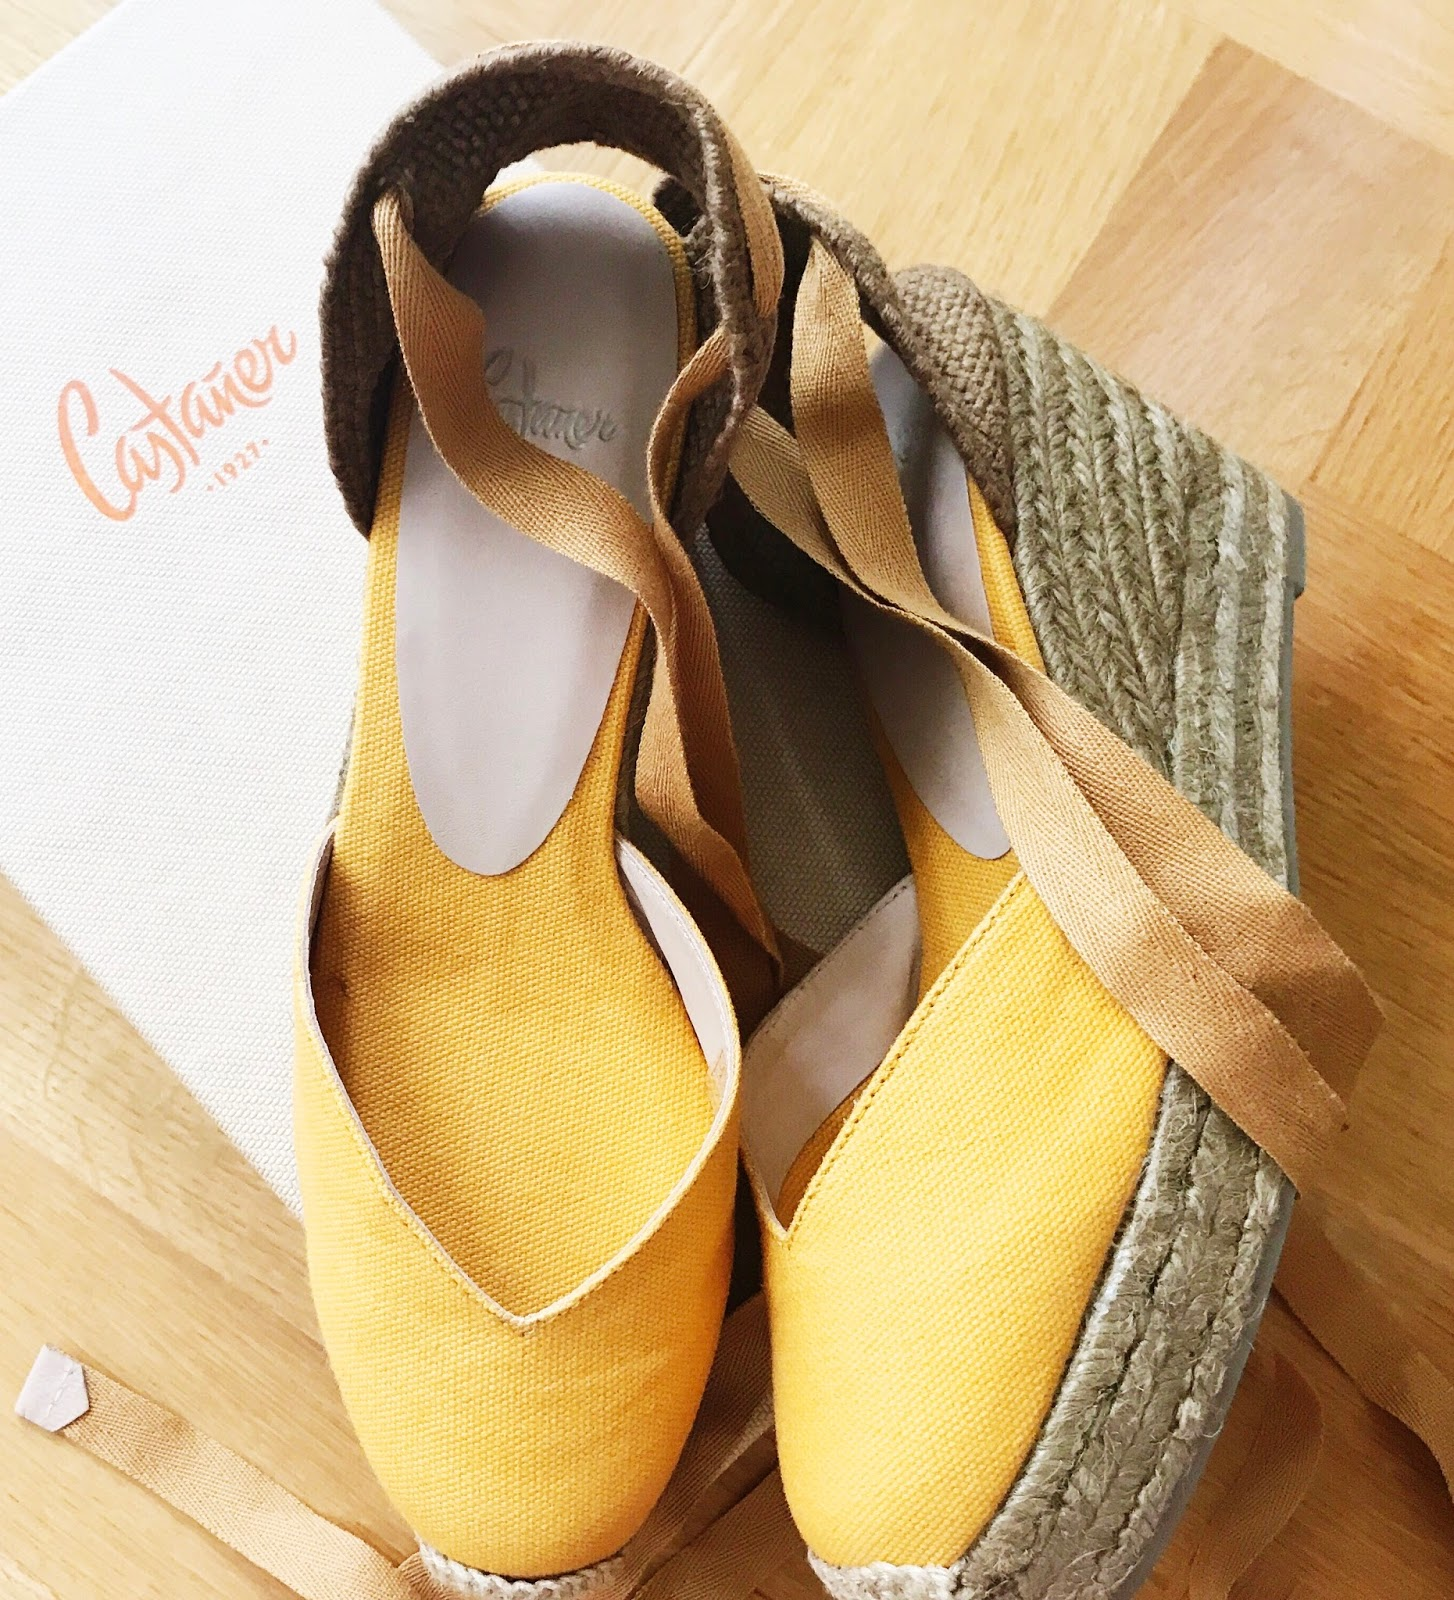 b79b259a3636 The Castañer family has been reinventing the espadrille since 1927. In the  late  60s